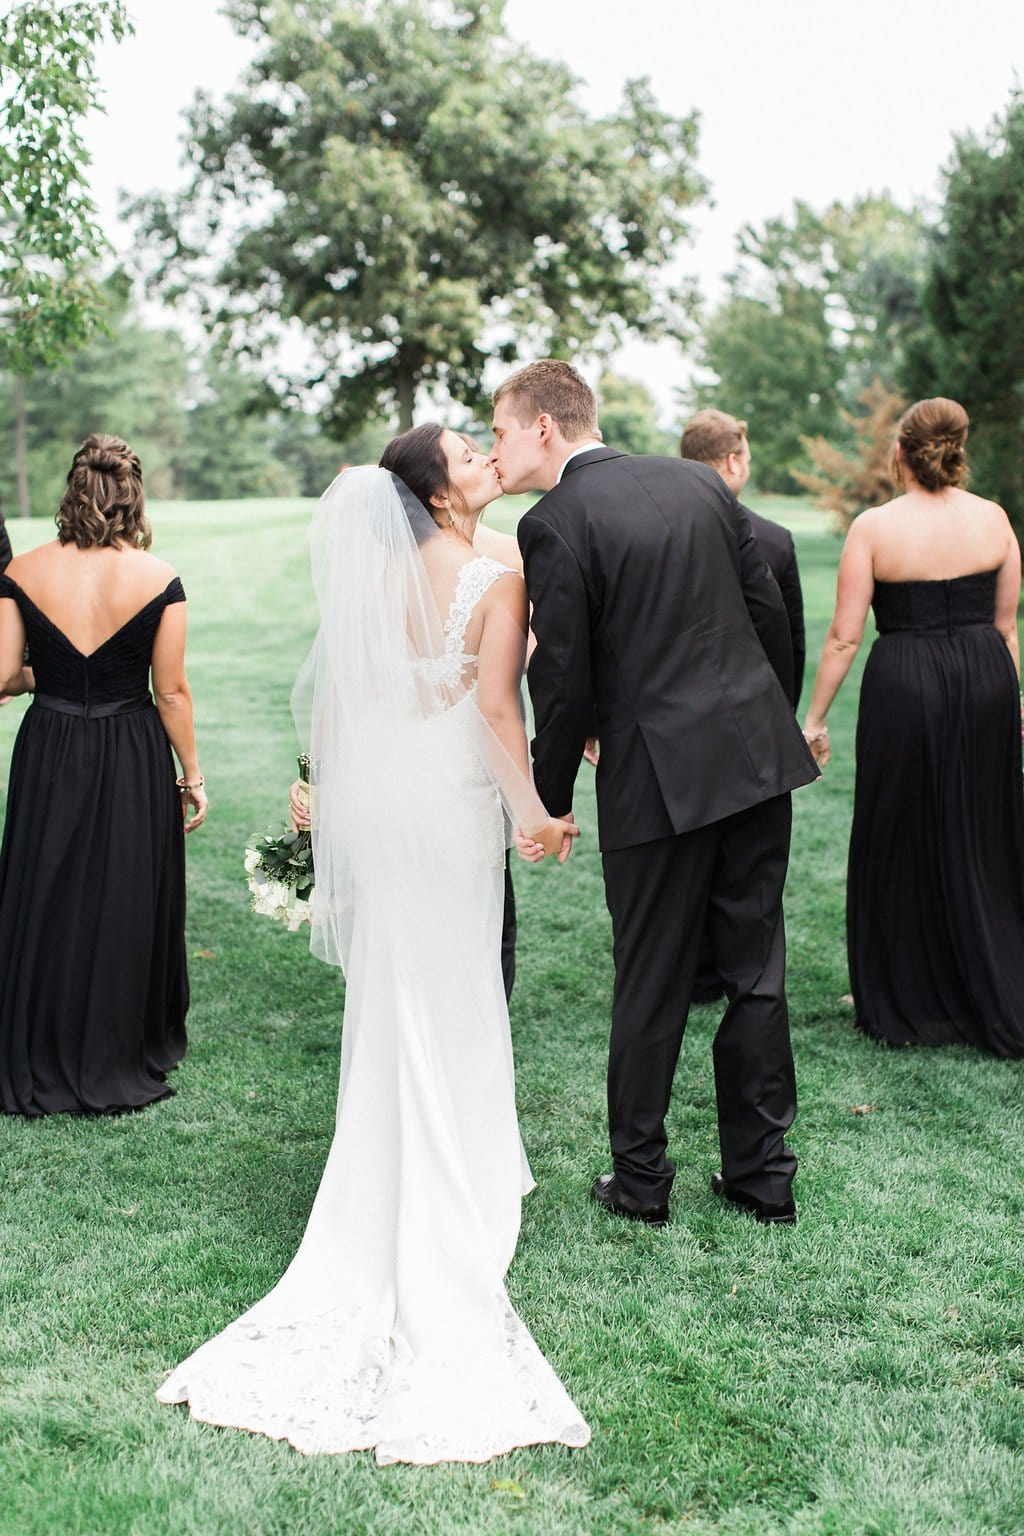 Bride and groom kissing while holding hands and walking with bridal party on golf course